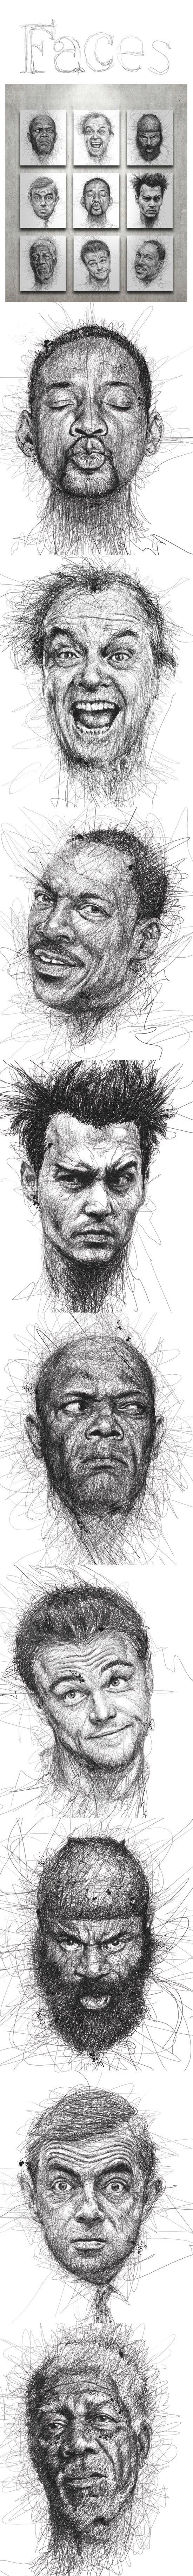 Faces by Vince Low - what a cool way to draw with pen. ive done a similar idea, but never for a face. i must try this